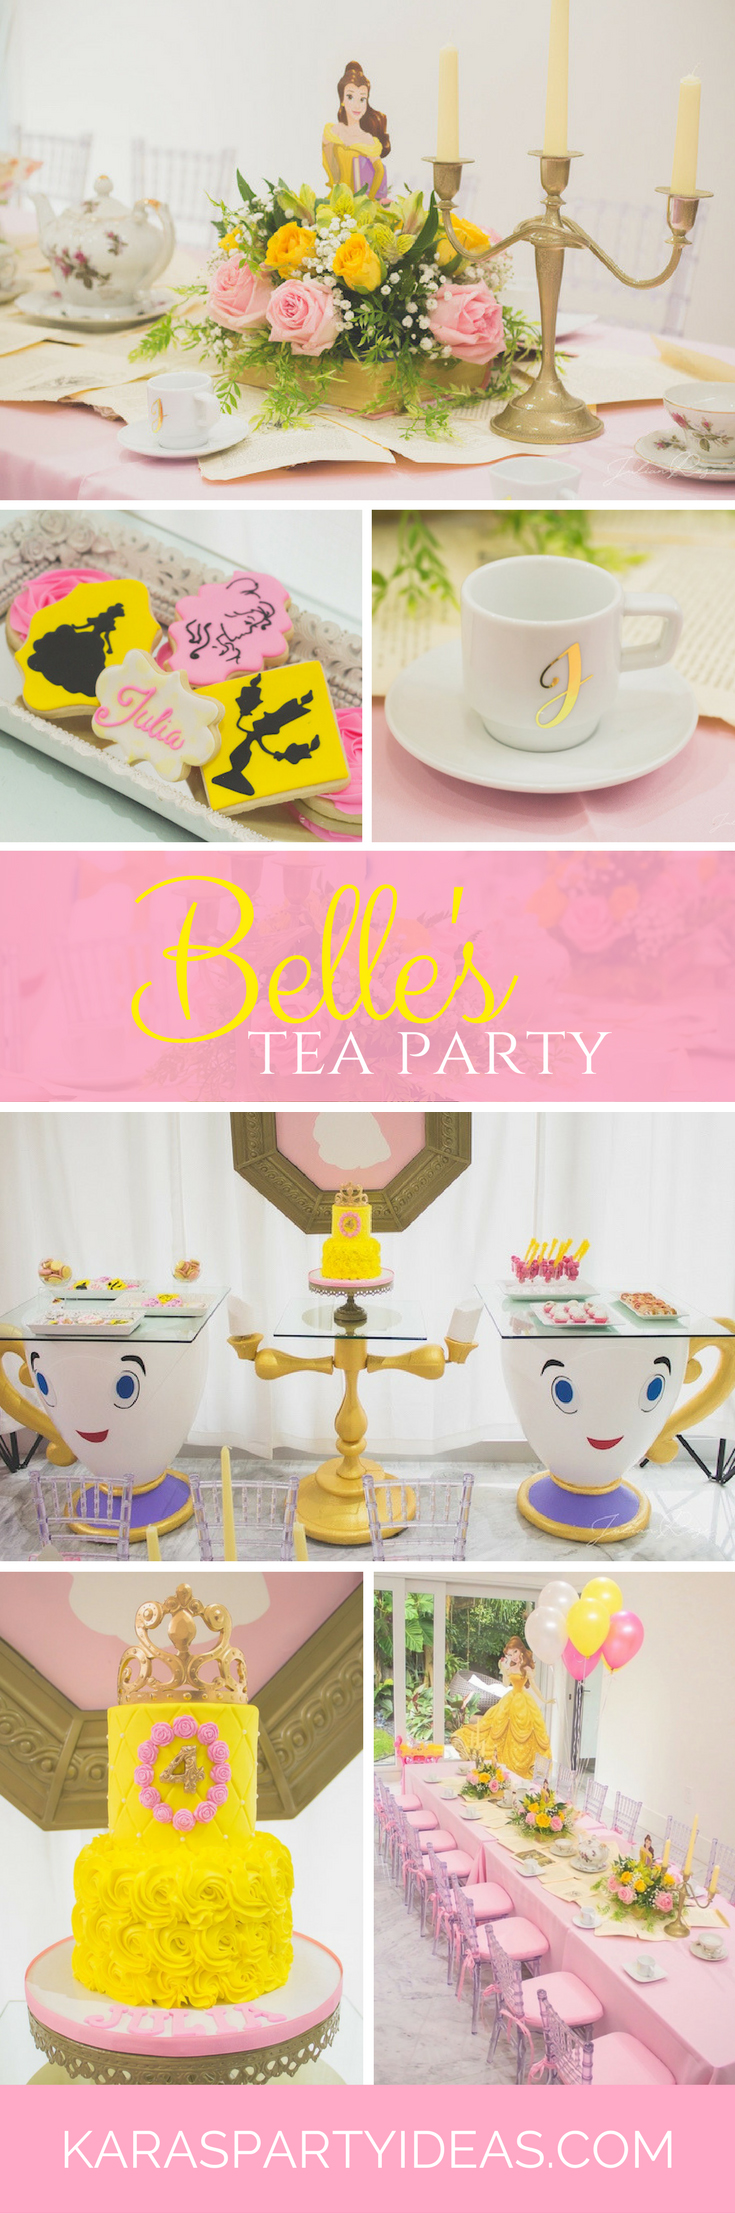 Belle's Tea Party via Kara's Party Ideas - KarasPartyIdeas.com